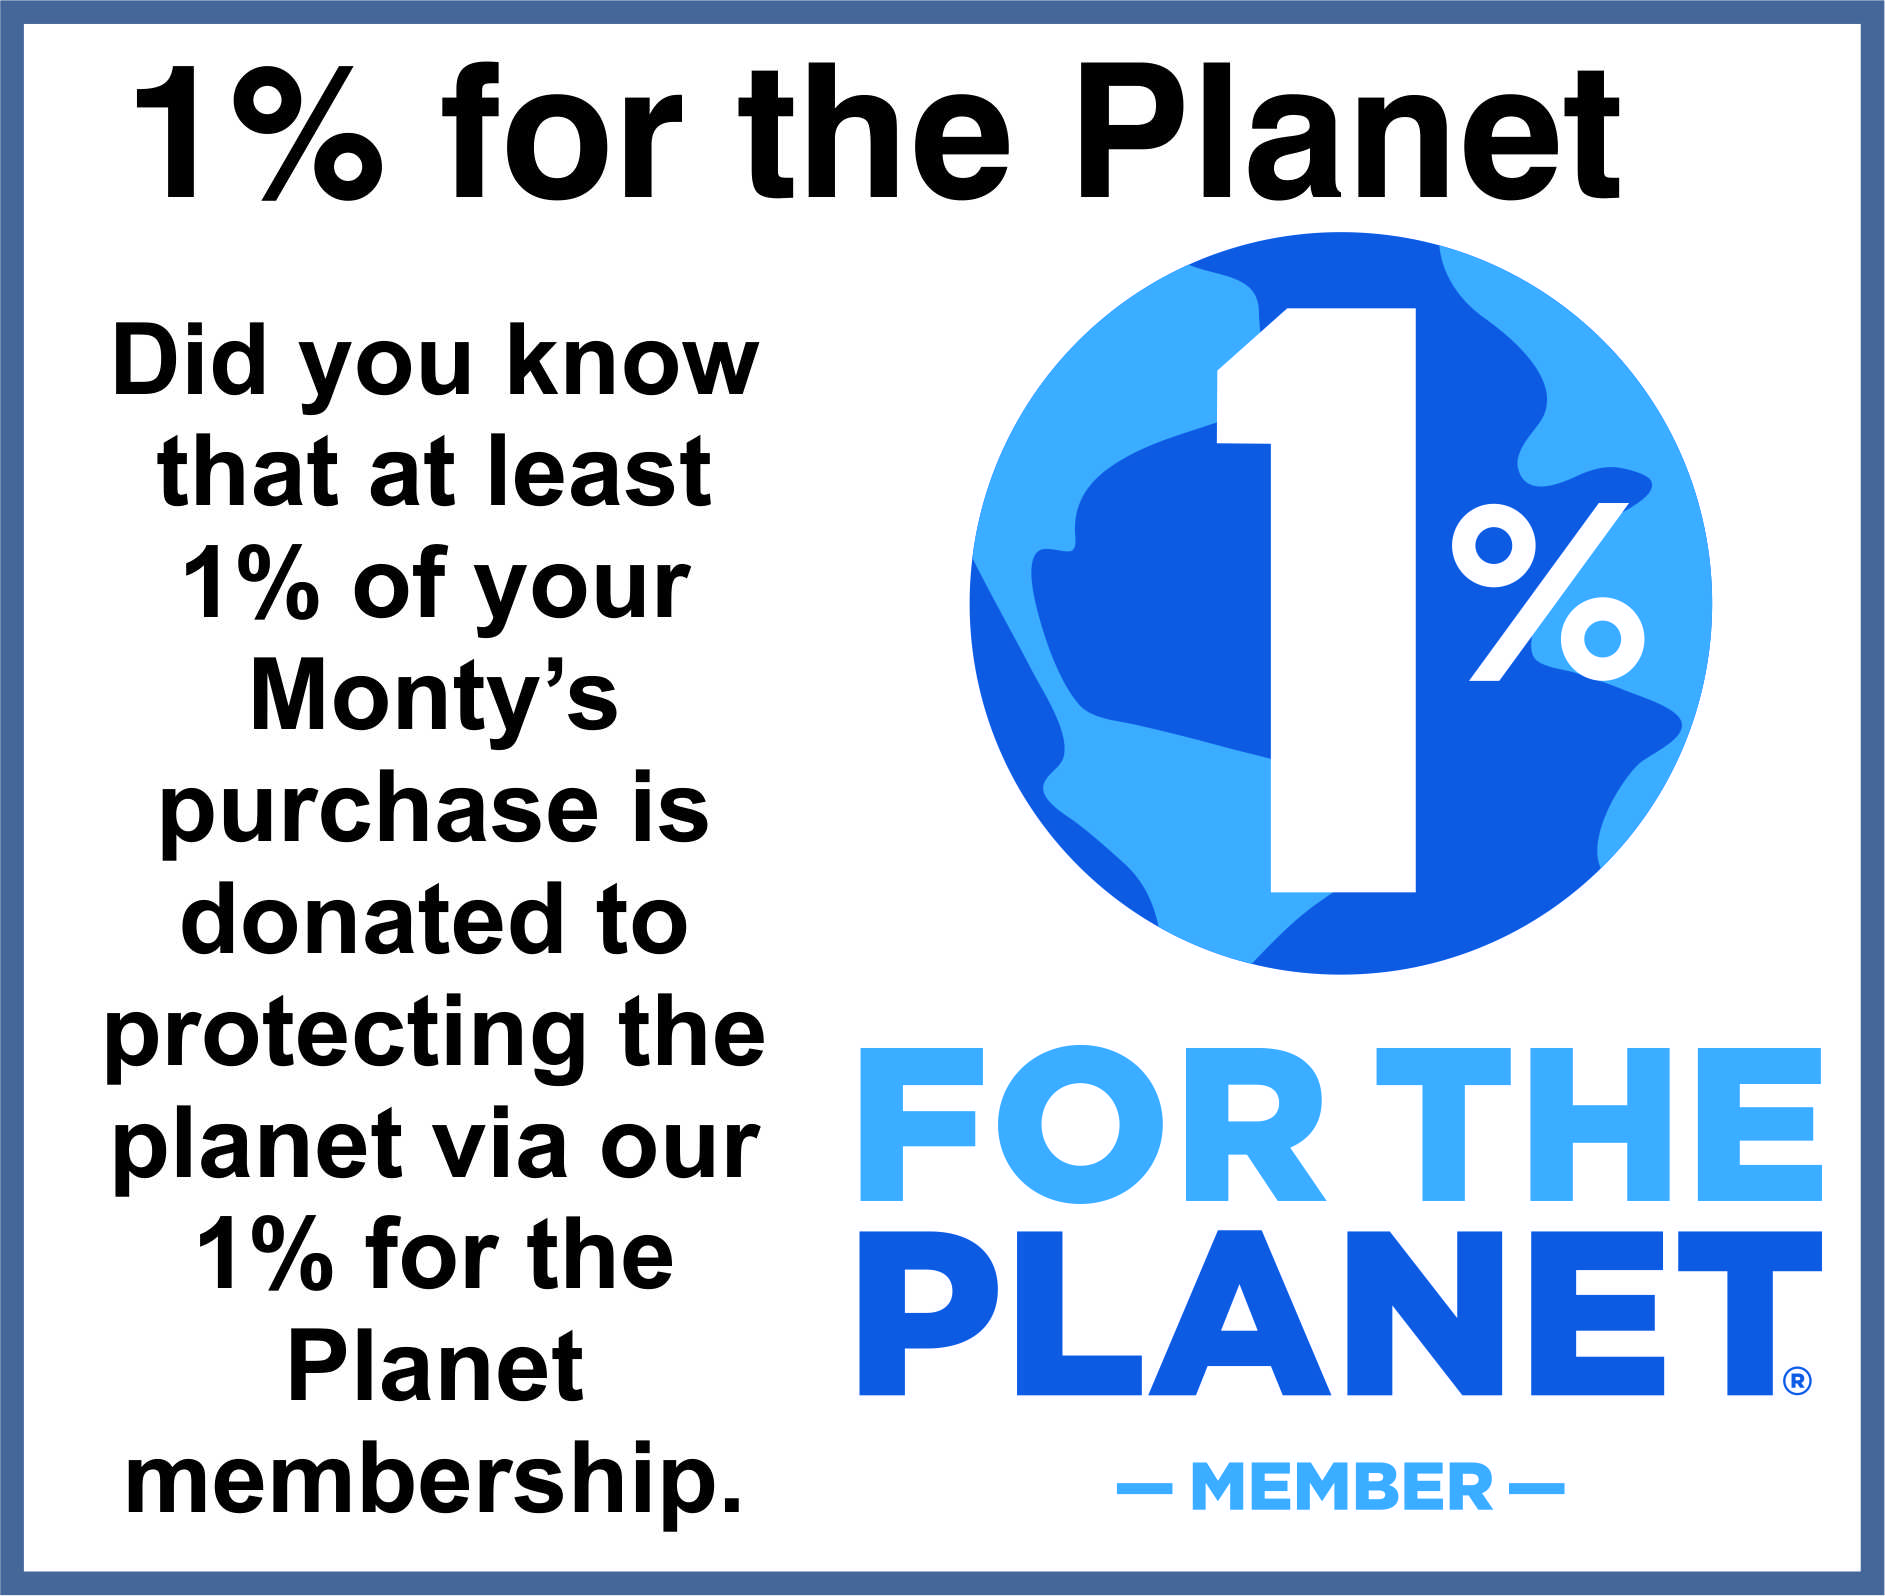 1 for planet home page small.jpg